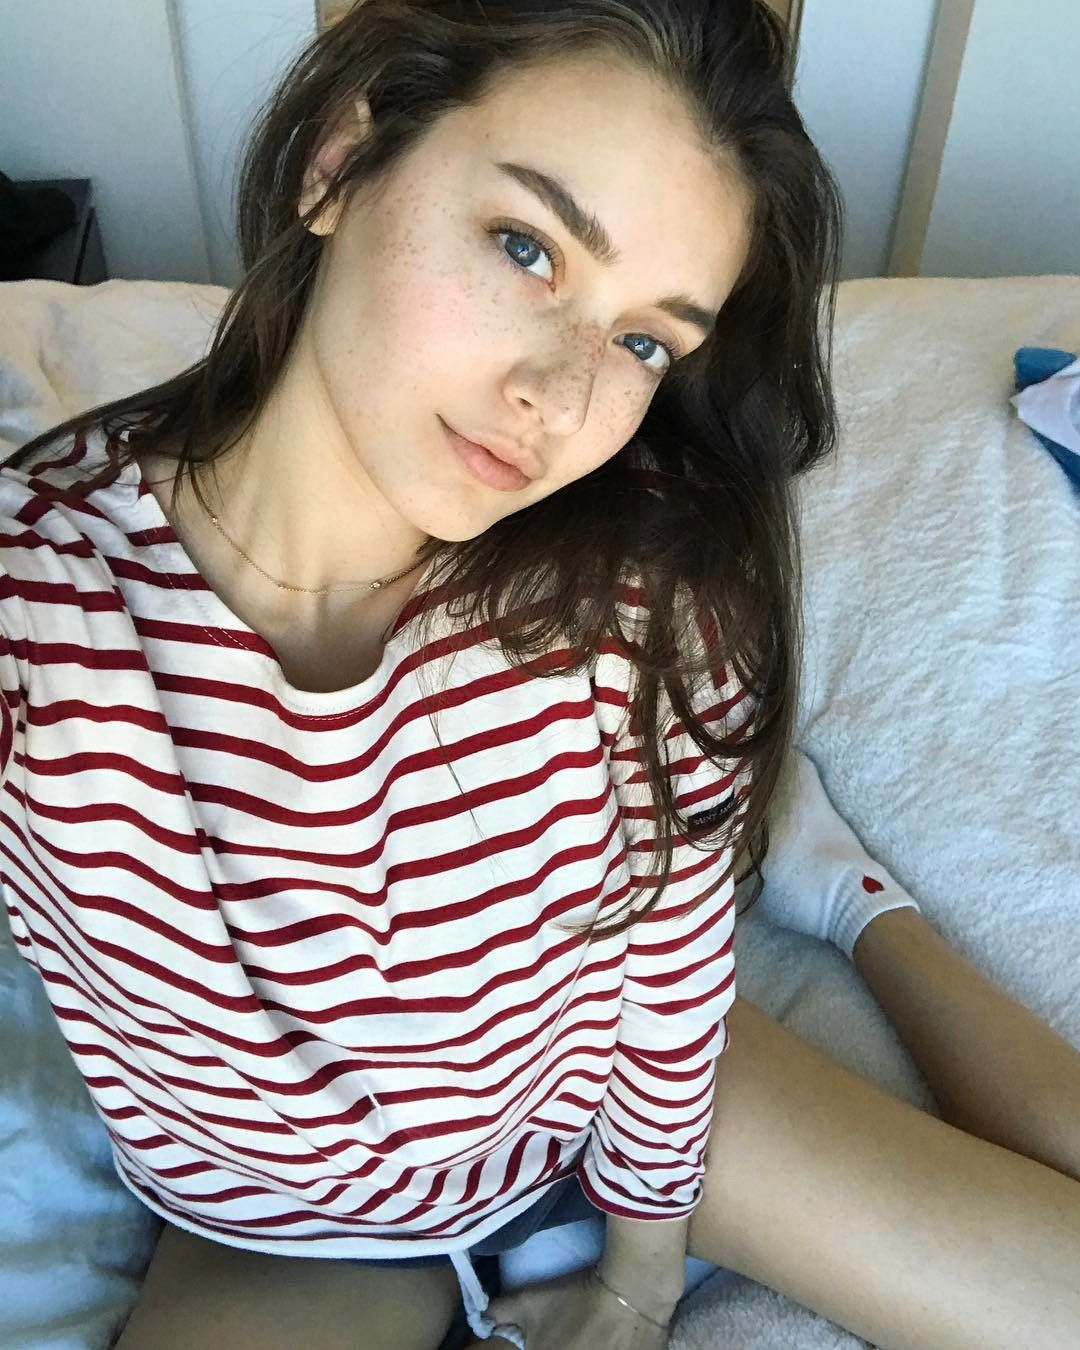 Hacked Jessica Clements nude (83 photo), Pussy, Bikini, Boobs, butt 2020